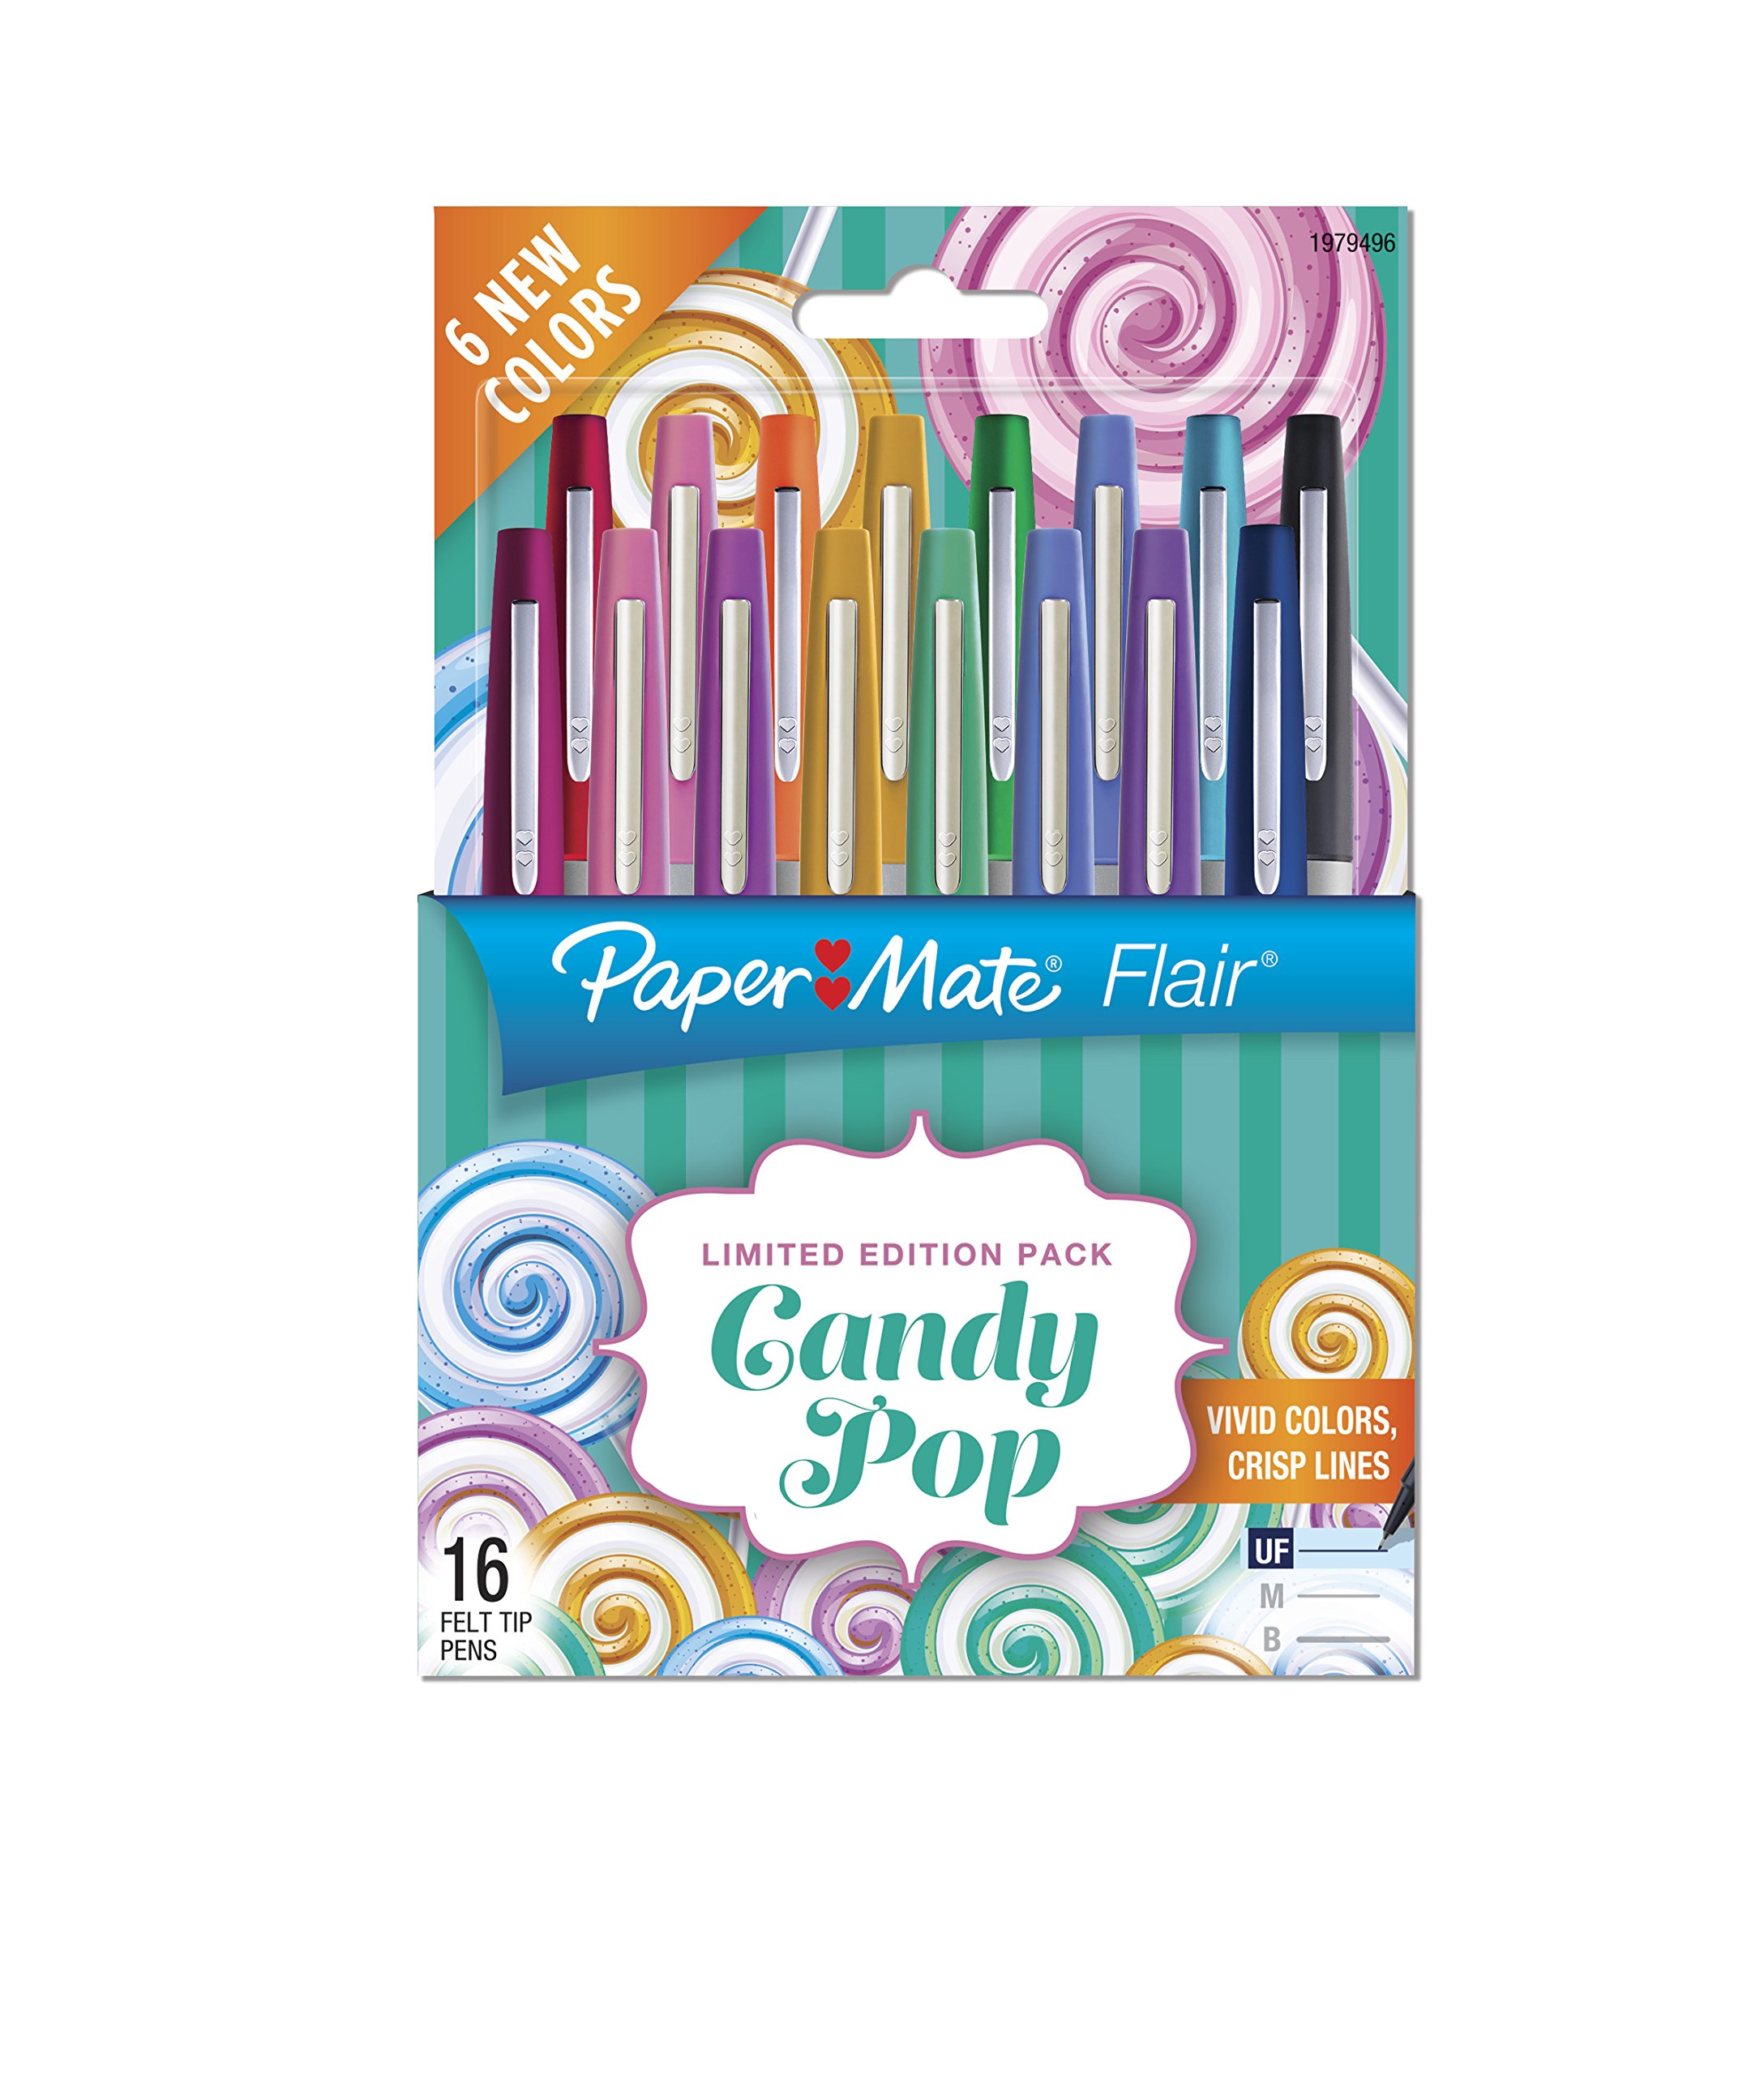 Paper Mate 1979496 Flair Felt Tip Pens, Ultra Fine Point (0.4mm), Limited Edition Candy Pop Pack, 16 Count (2027233) by PAPER MATE